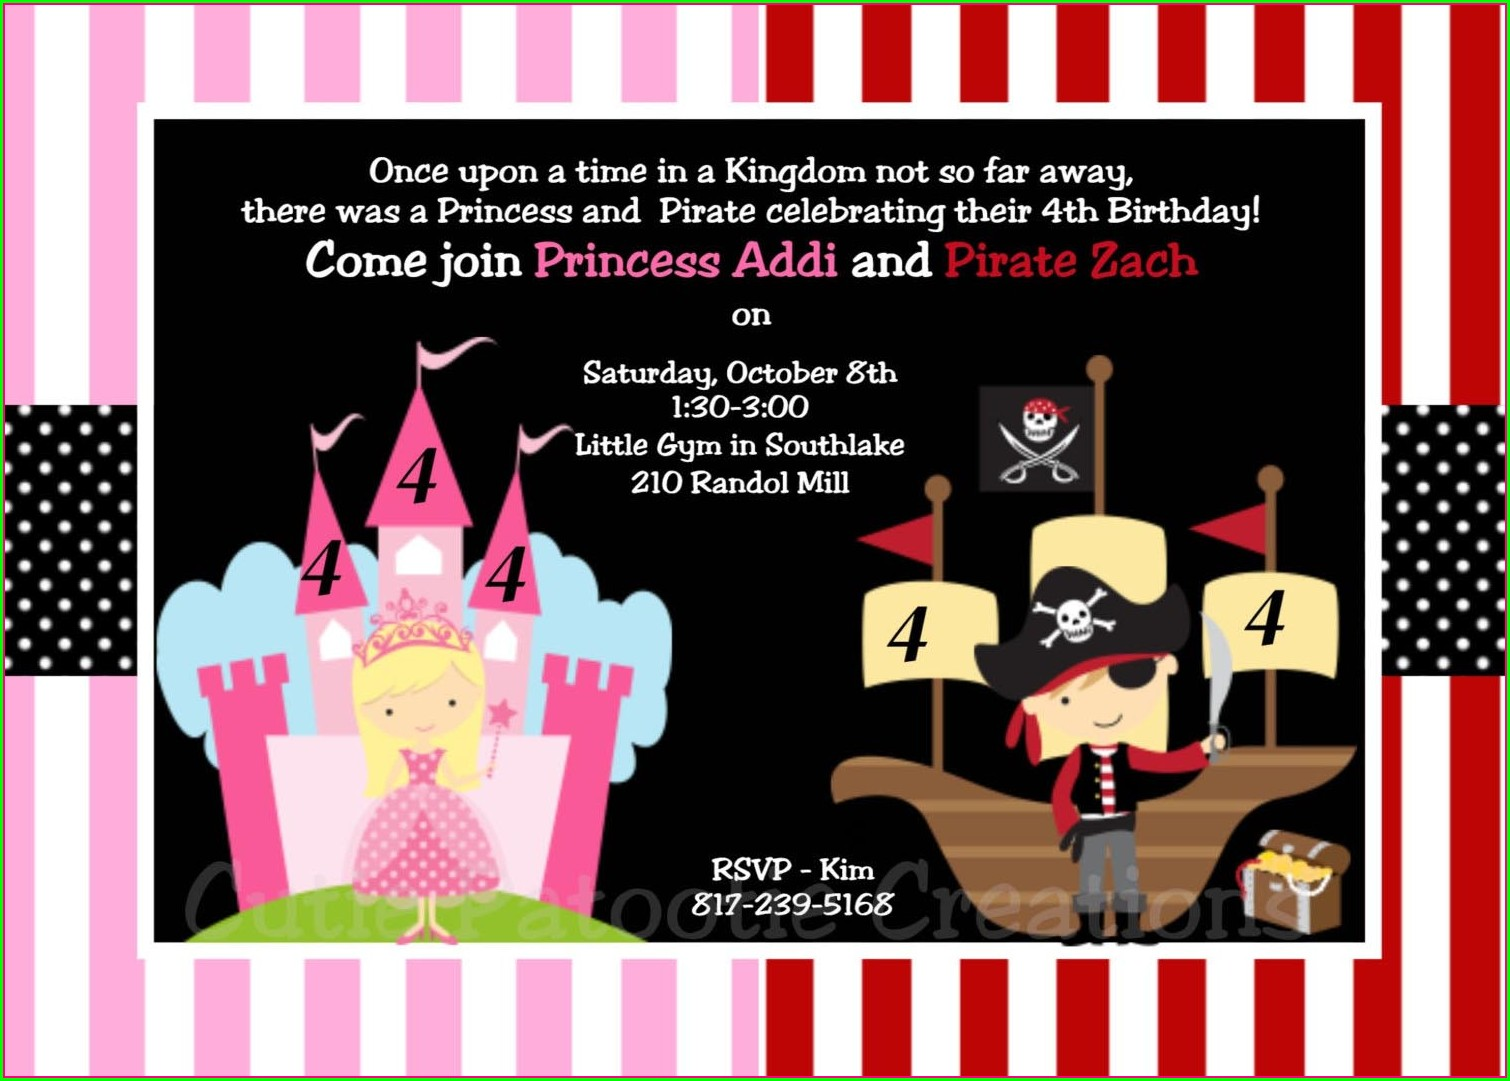 Princess And Pirate Invitation Template